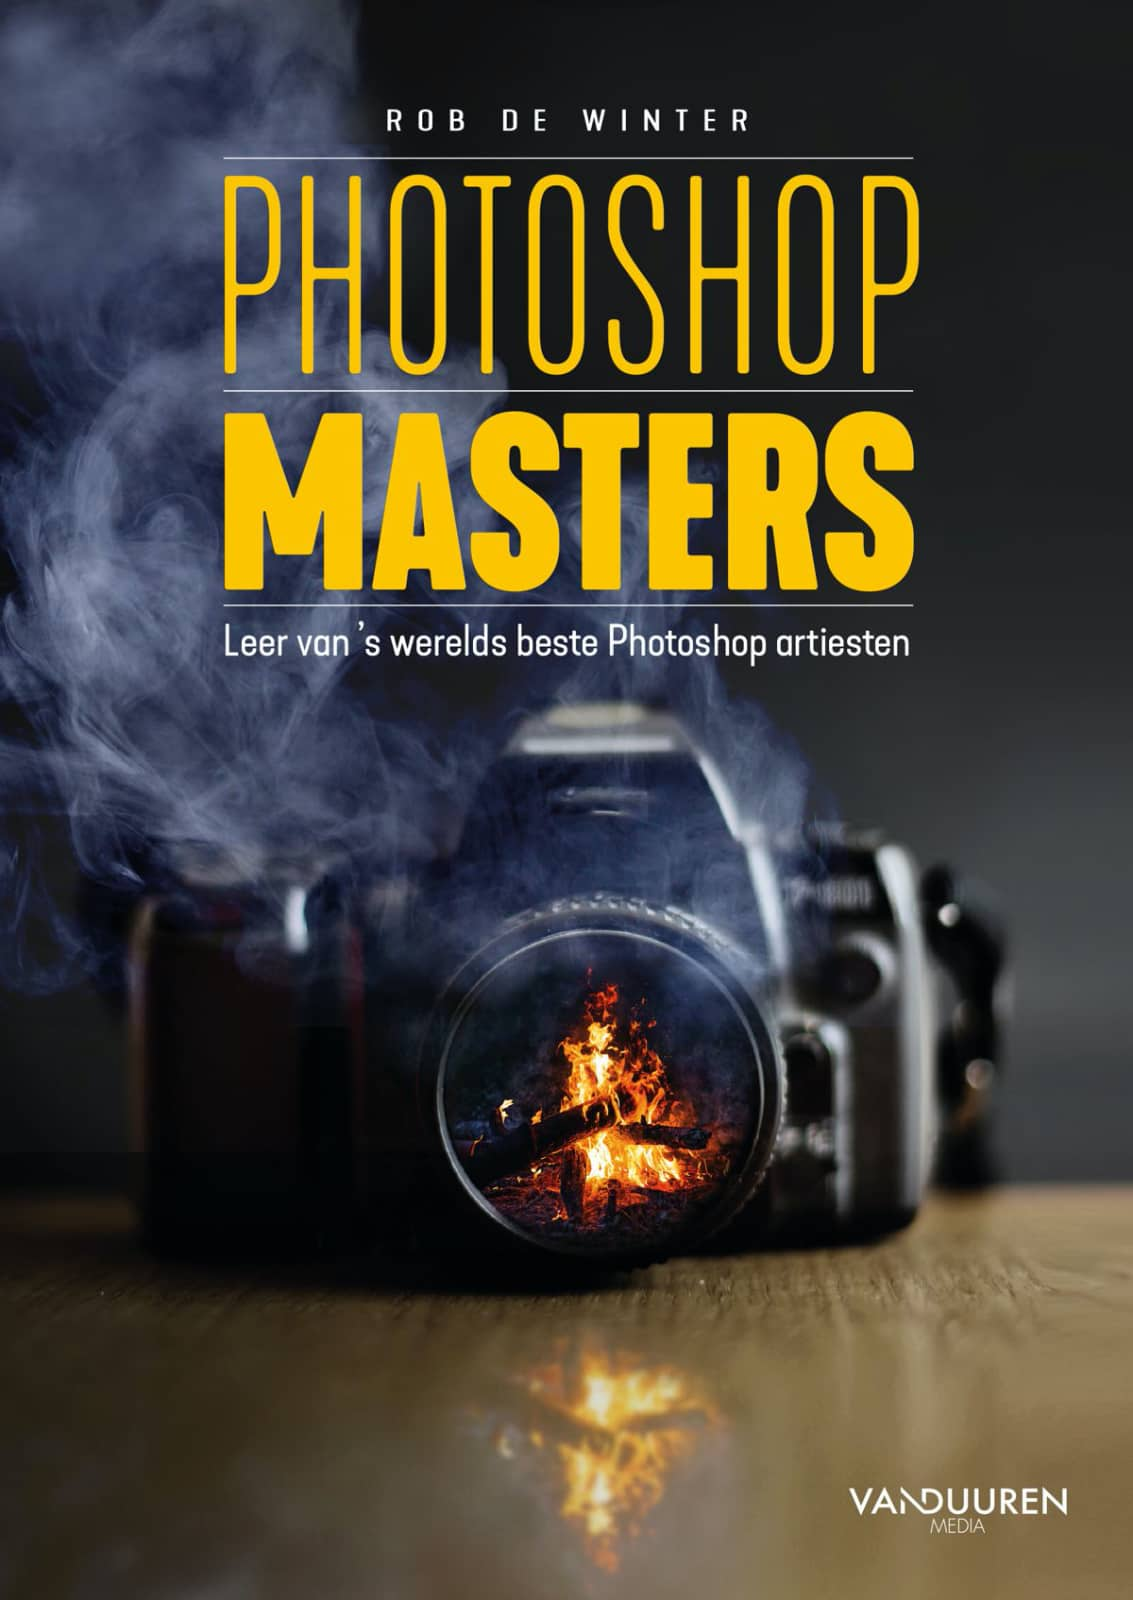 Photoshop Masters - Leer van 's werelds beste Photoshop-artiesten door Rob de Winter, isbn 9789463561549